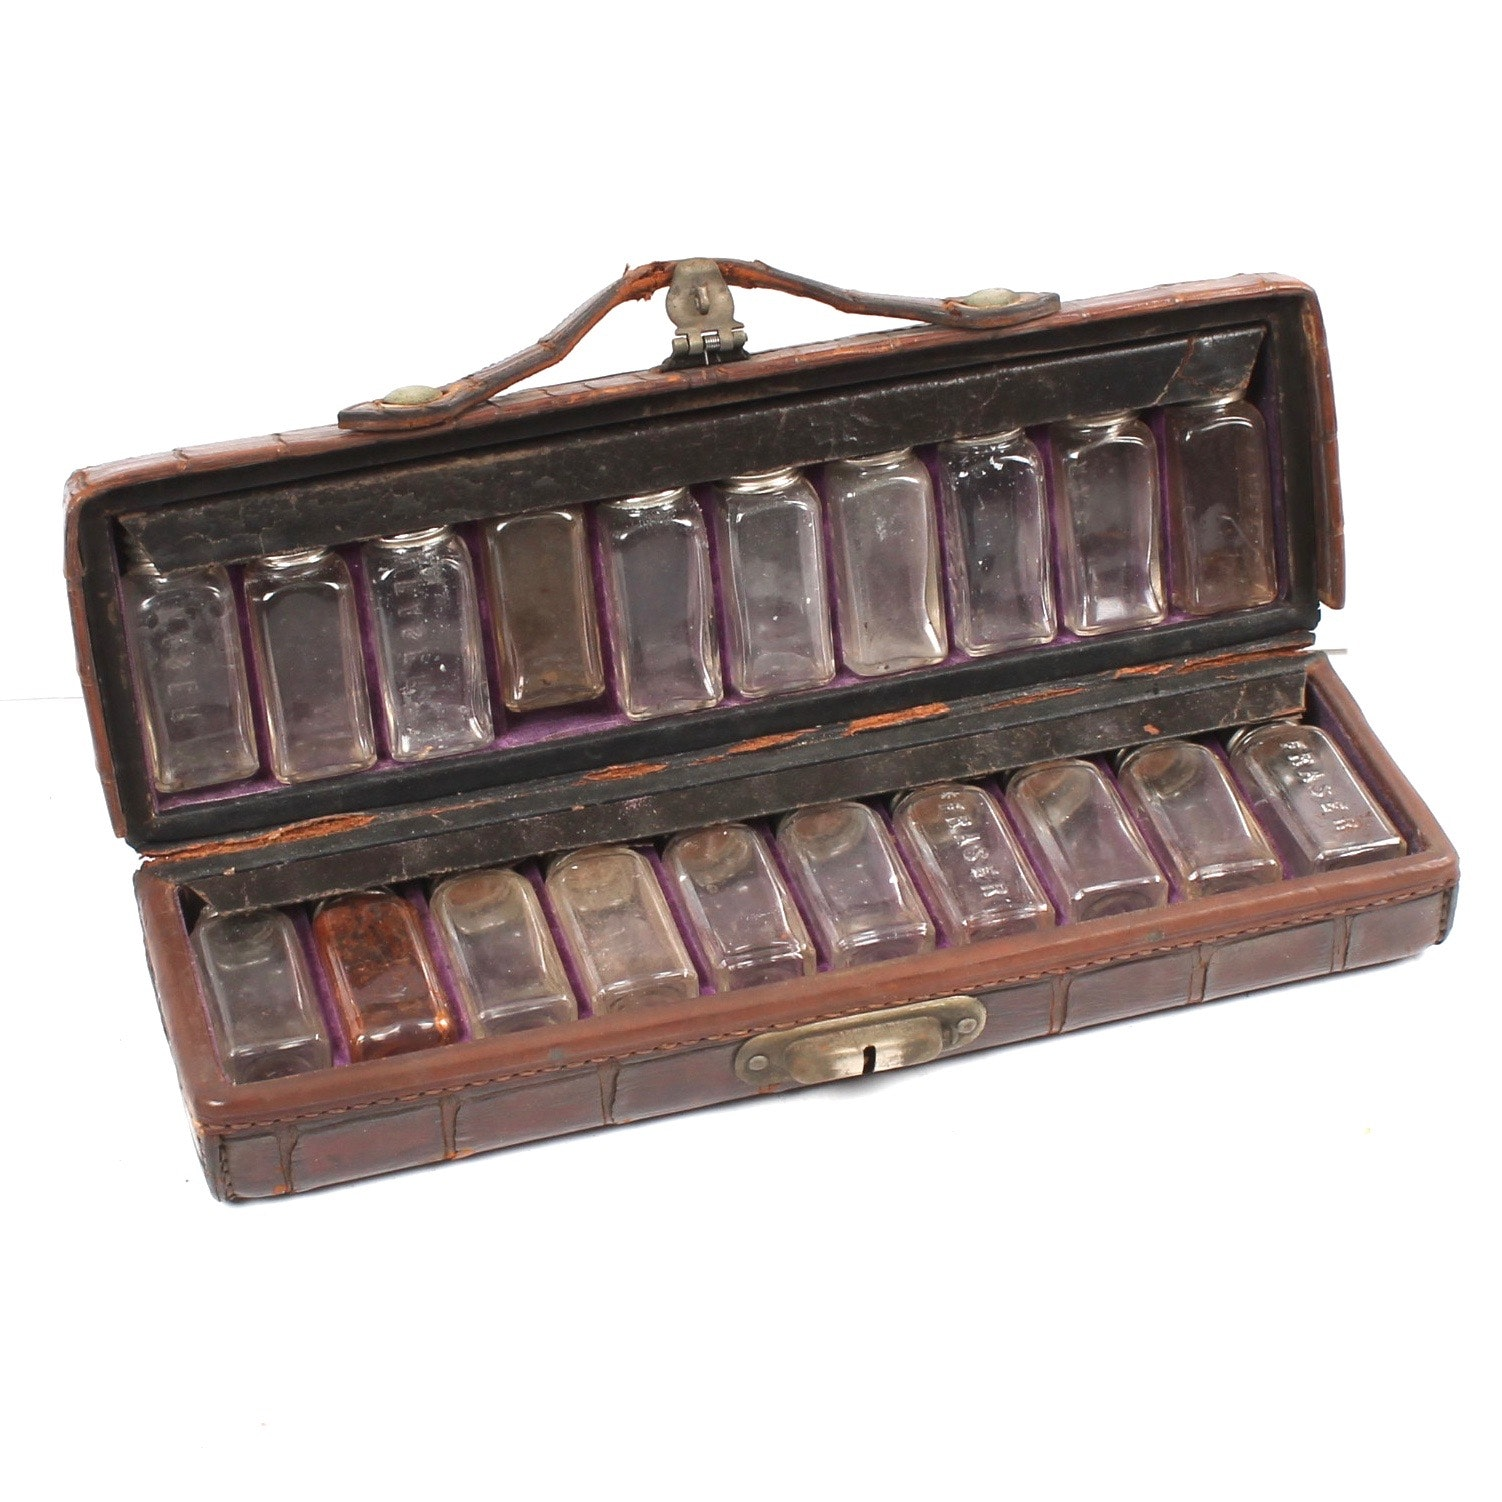 Antique Medicine Bottles with Physician's Carrying Case